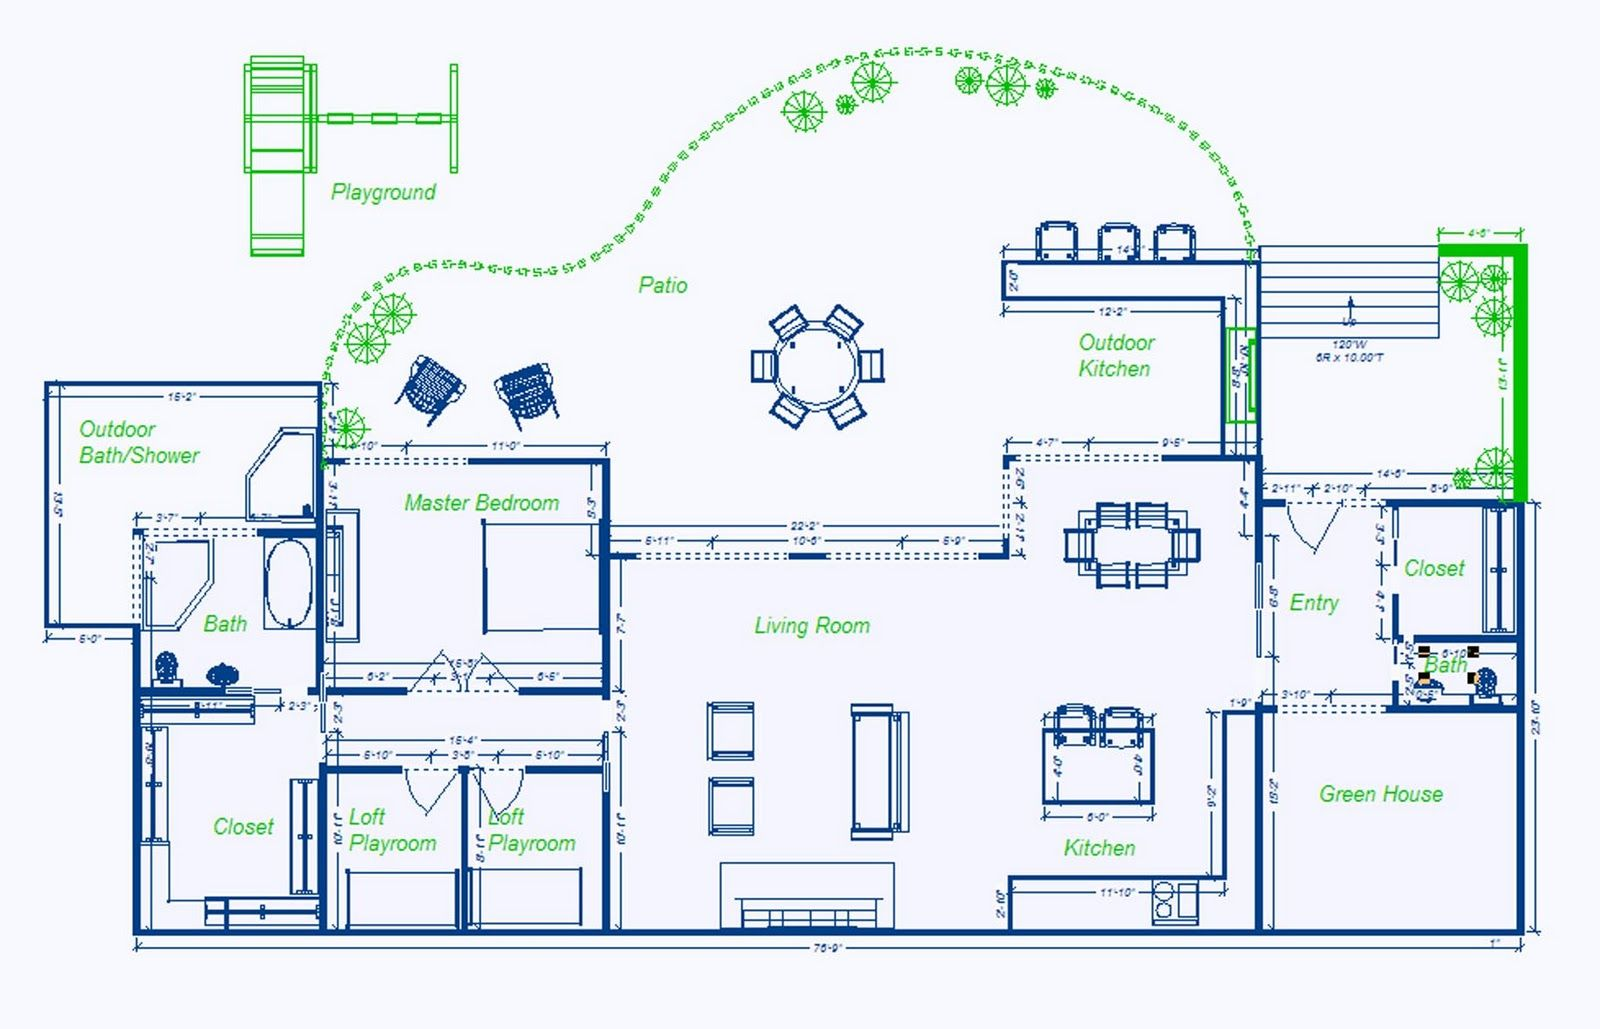 Luxury Waterfront Home Plans New Beach House Plans Cool Very Good Floor Plan For Elements Cape Of L Underground House Plans Underground Homes Beach House Plans